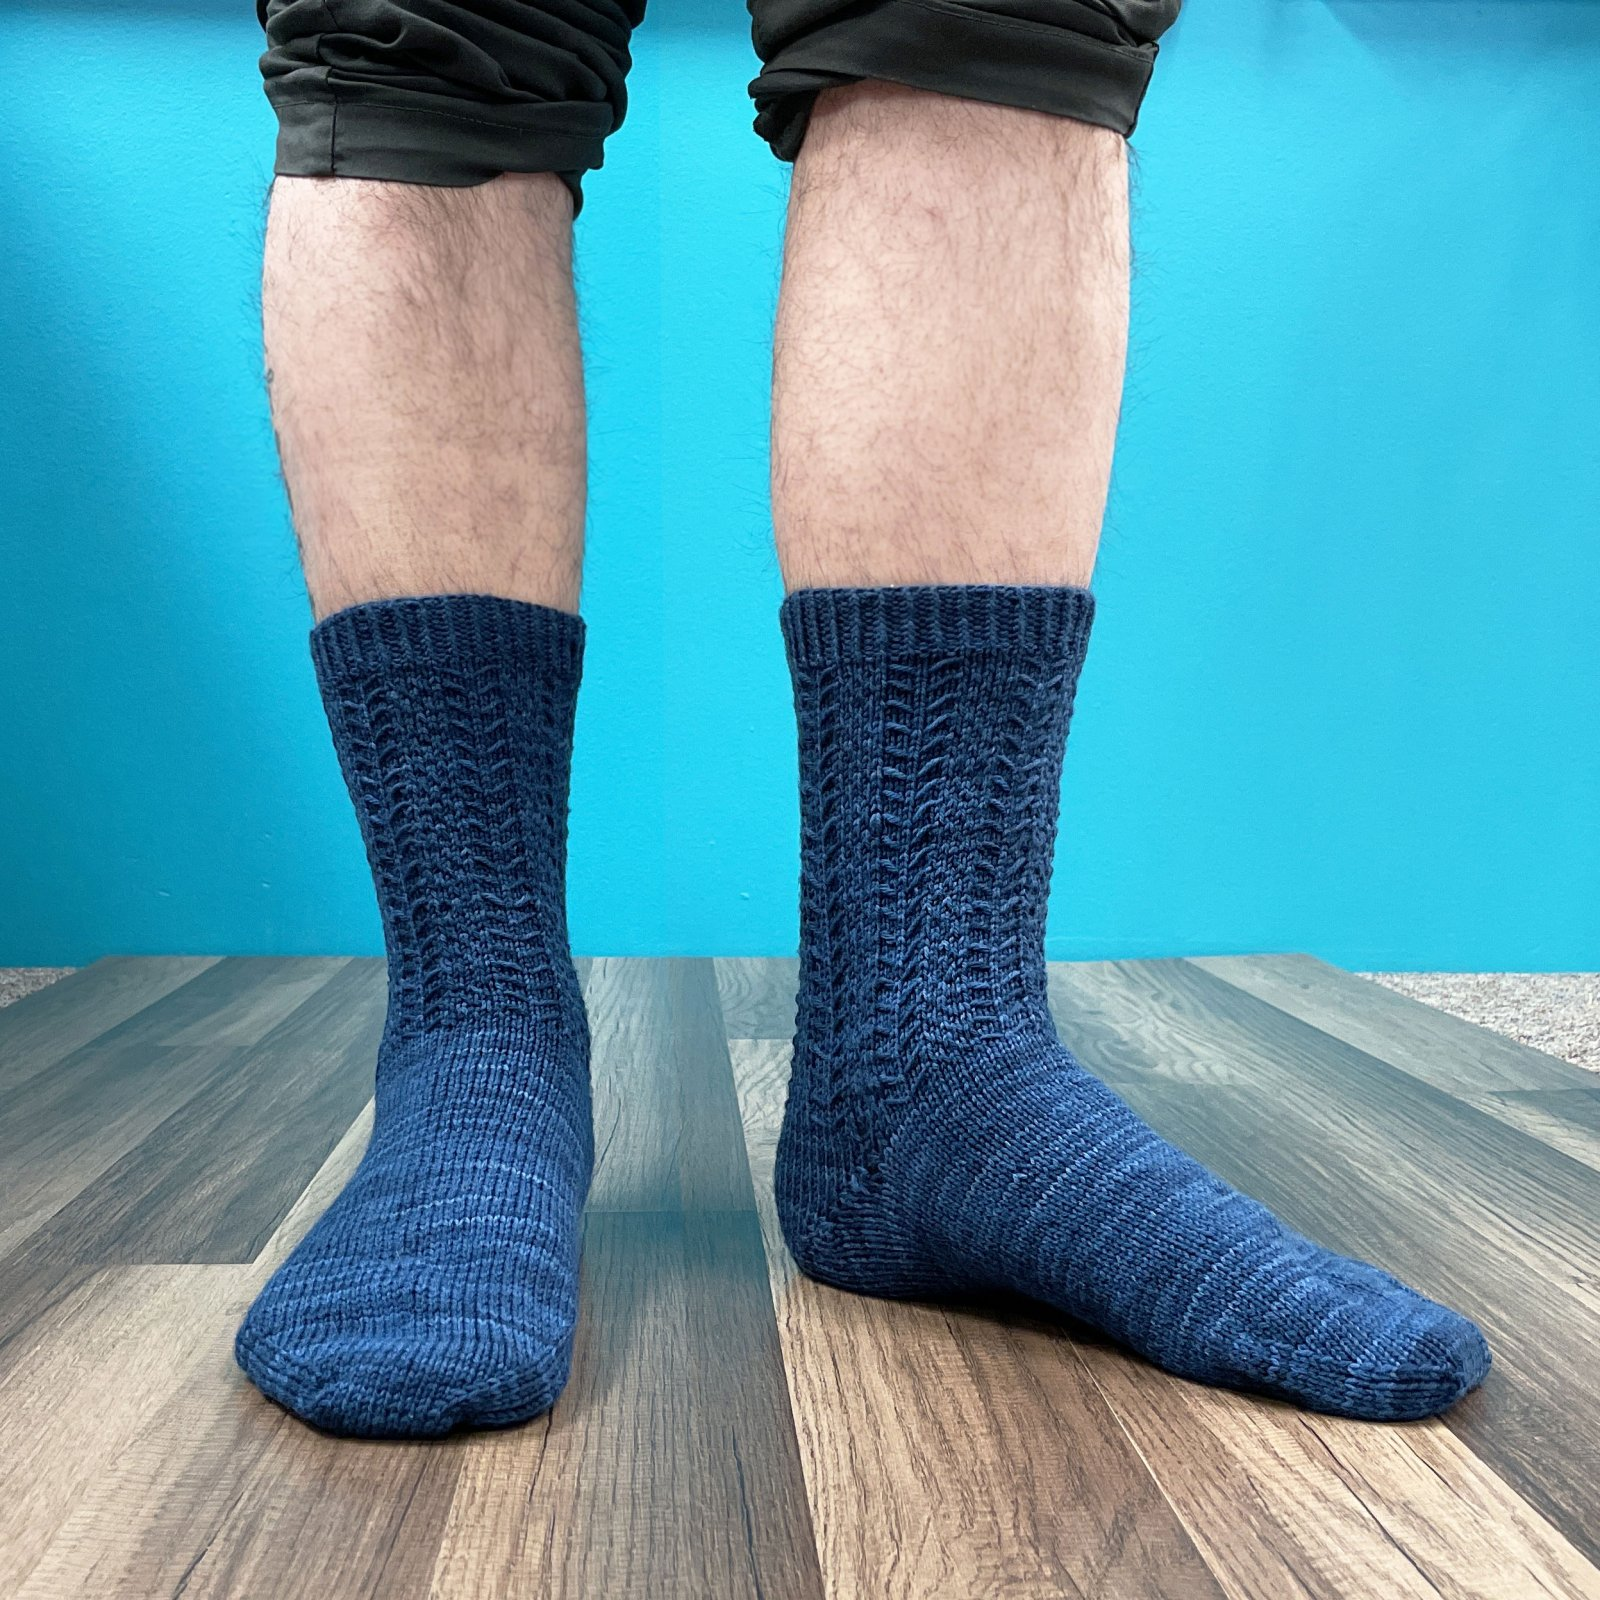 Sock of the Month Box - March 2021